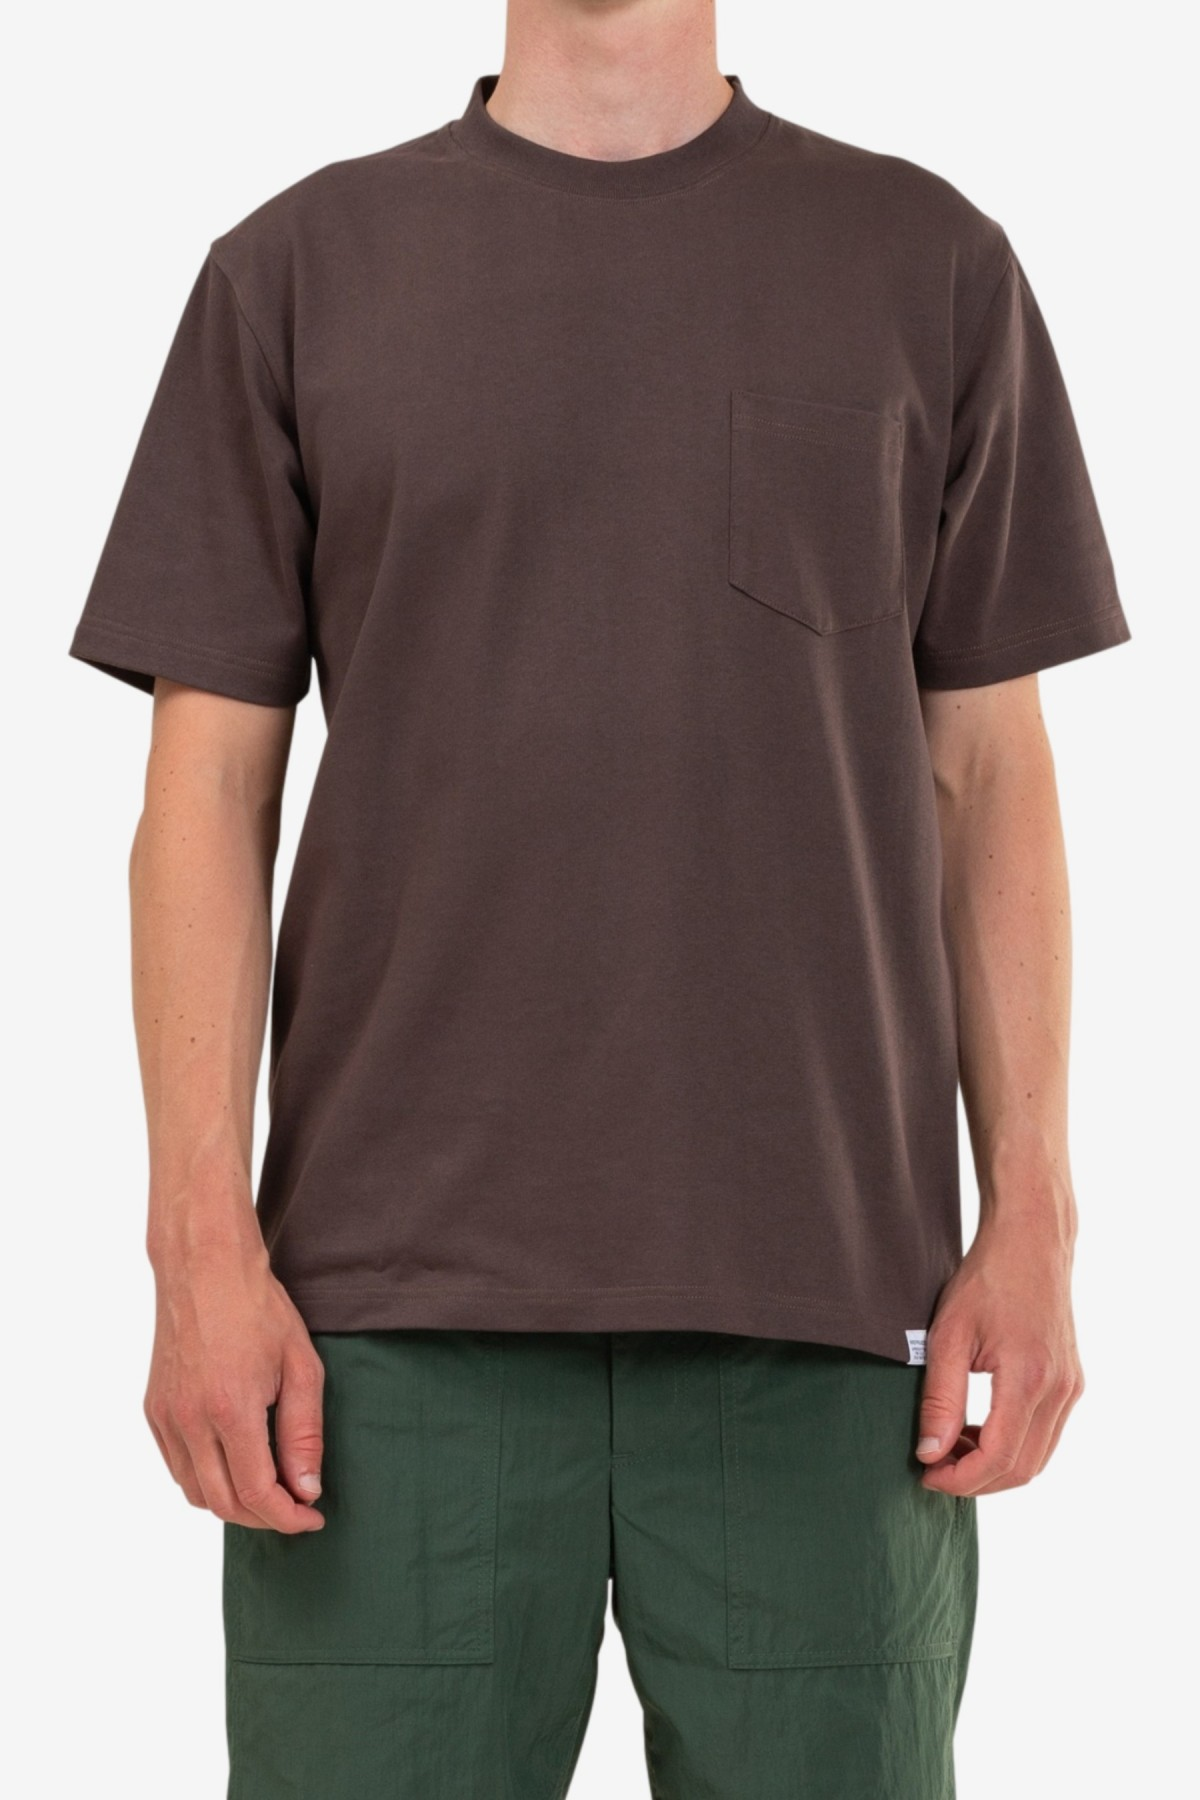 Norse Projects Johannes Pocket SS in Heathland Brown